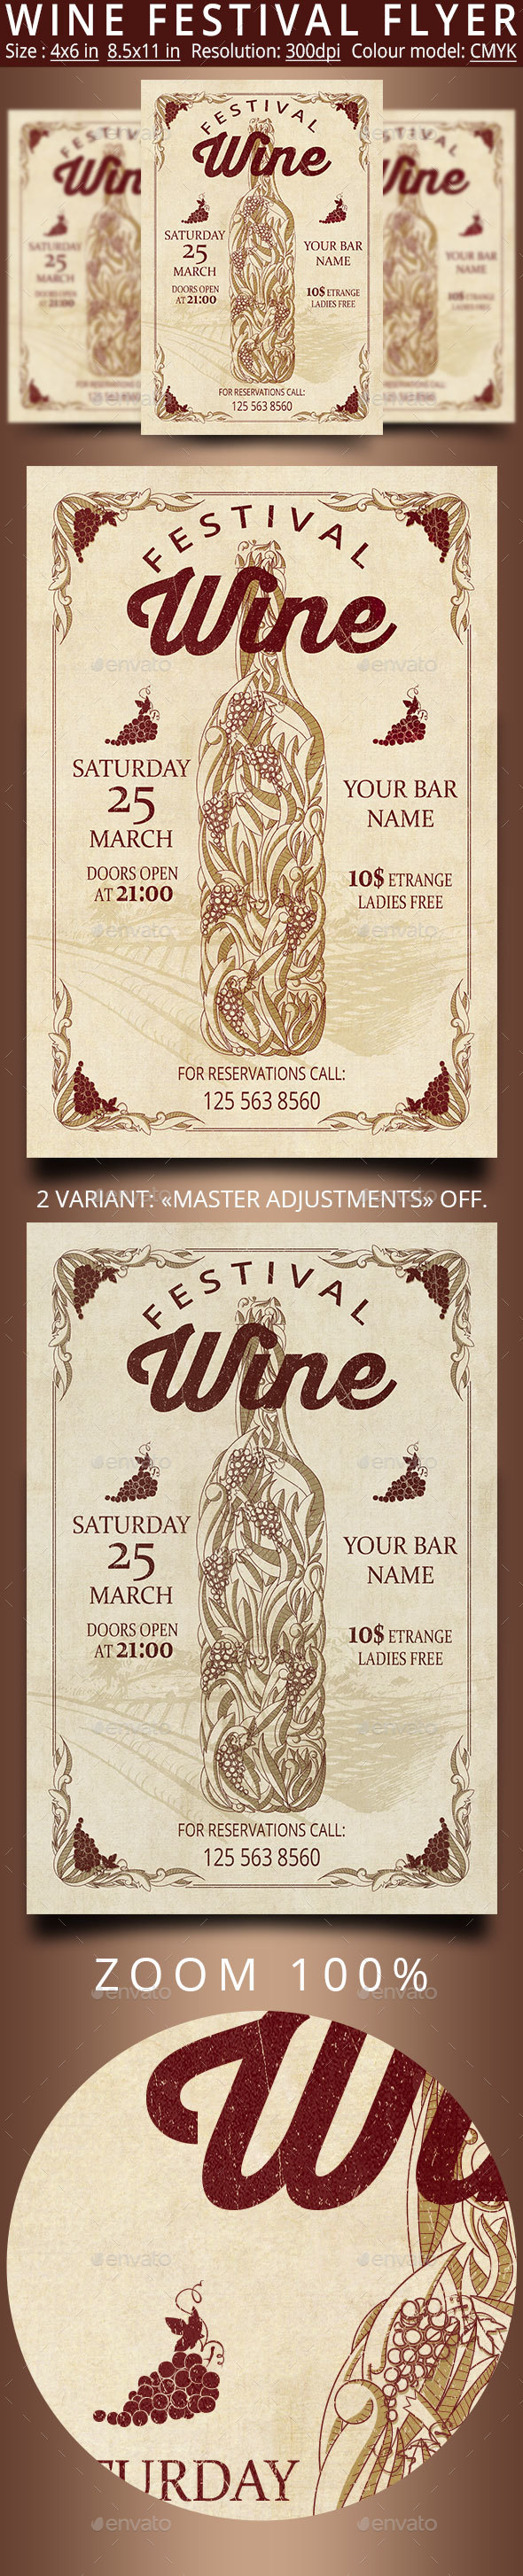 Wine Festival Retro Vintage Flyer - Events Flyers